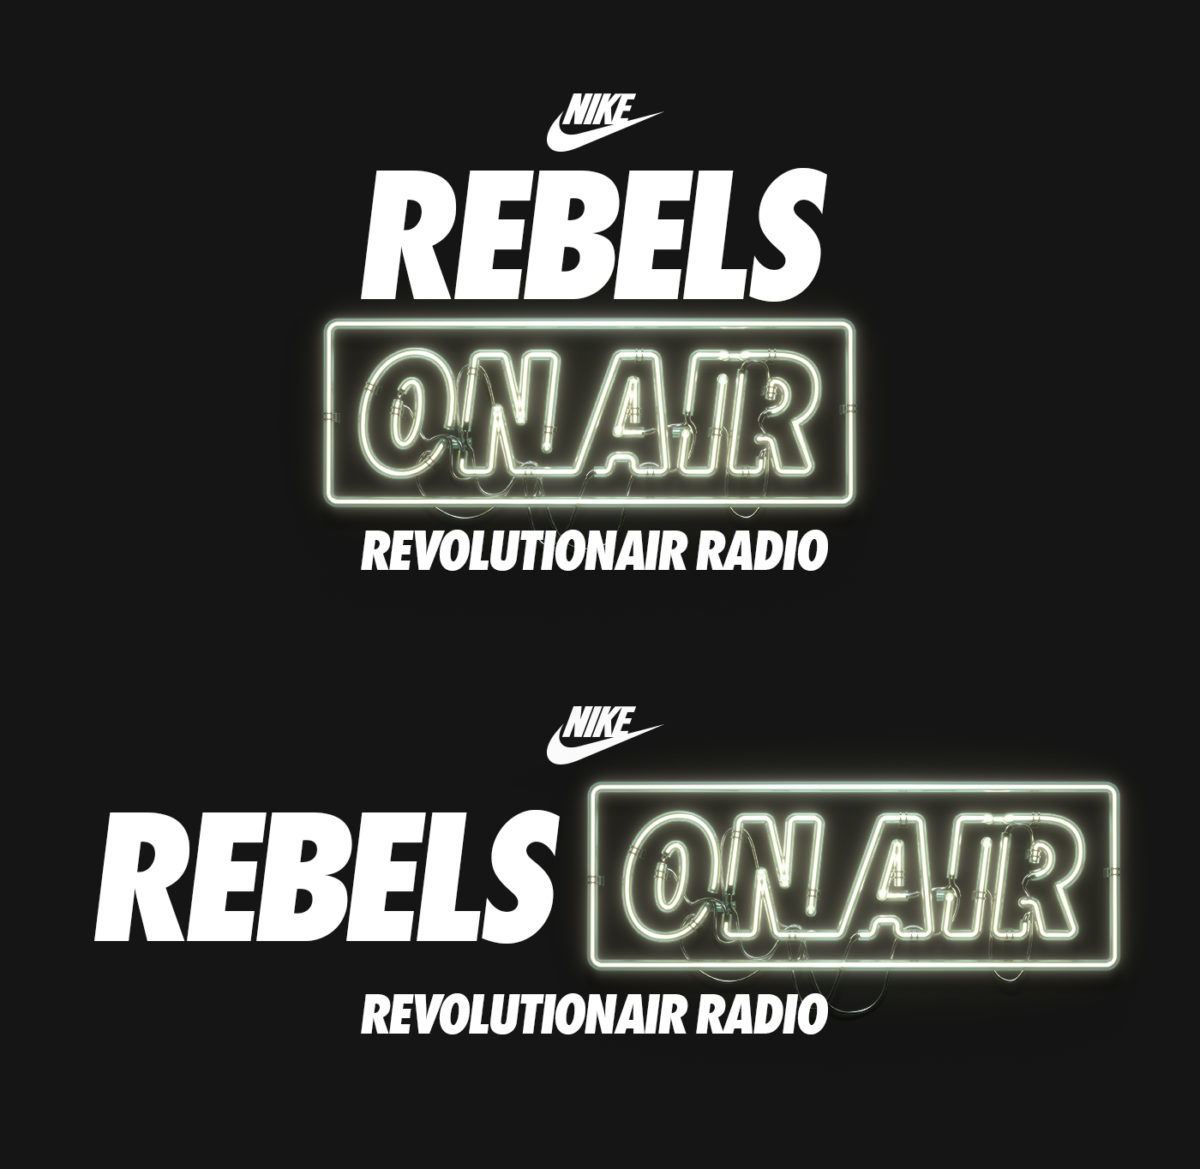 NIKE Rebels On Air Revolutionair Radio by Machineast Singapore design studio